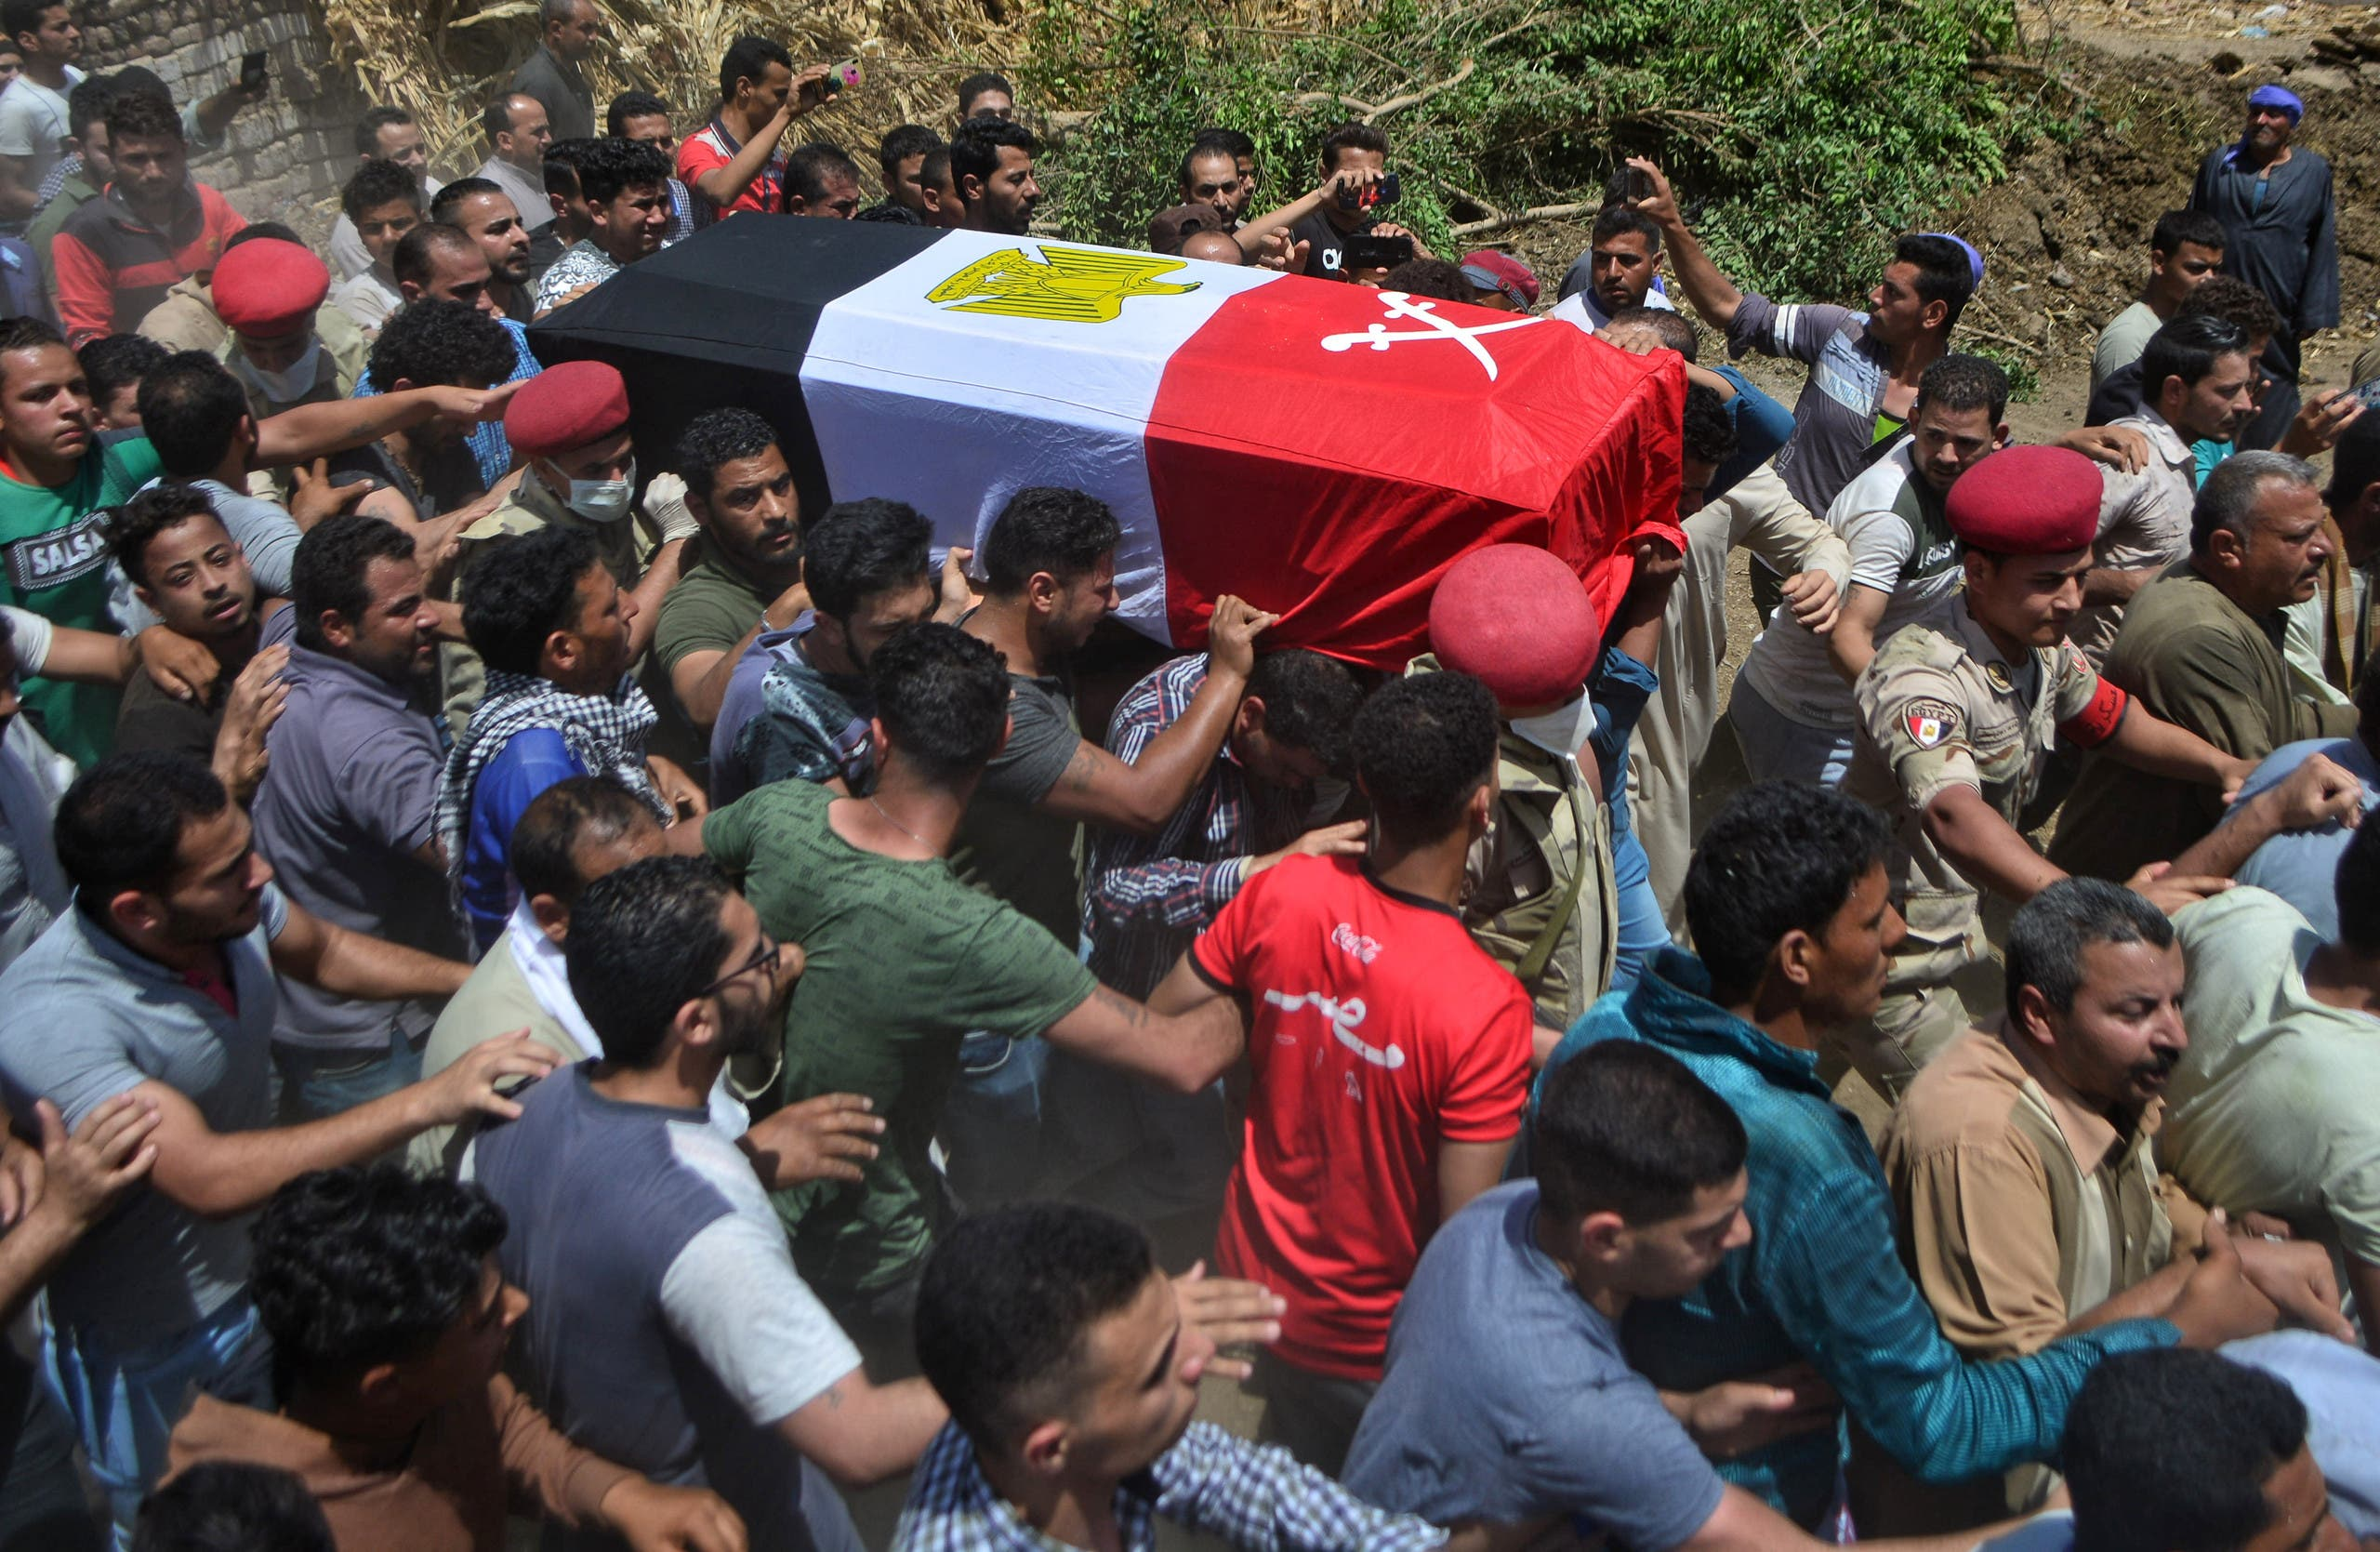 Mourners carry the coffin of Egyptian soldier Alaa Emad during his funeral in the village of Abwan in the Minya province on May 1, 2020, as his body was returned after he was killed in an explosion targeting an armored vehicle near Bir al-Abed in North Sinai. (AFP)